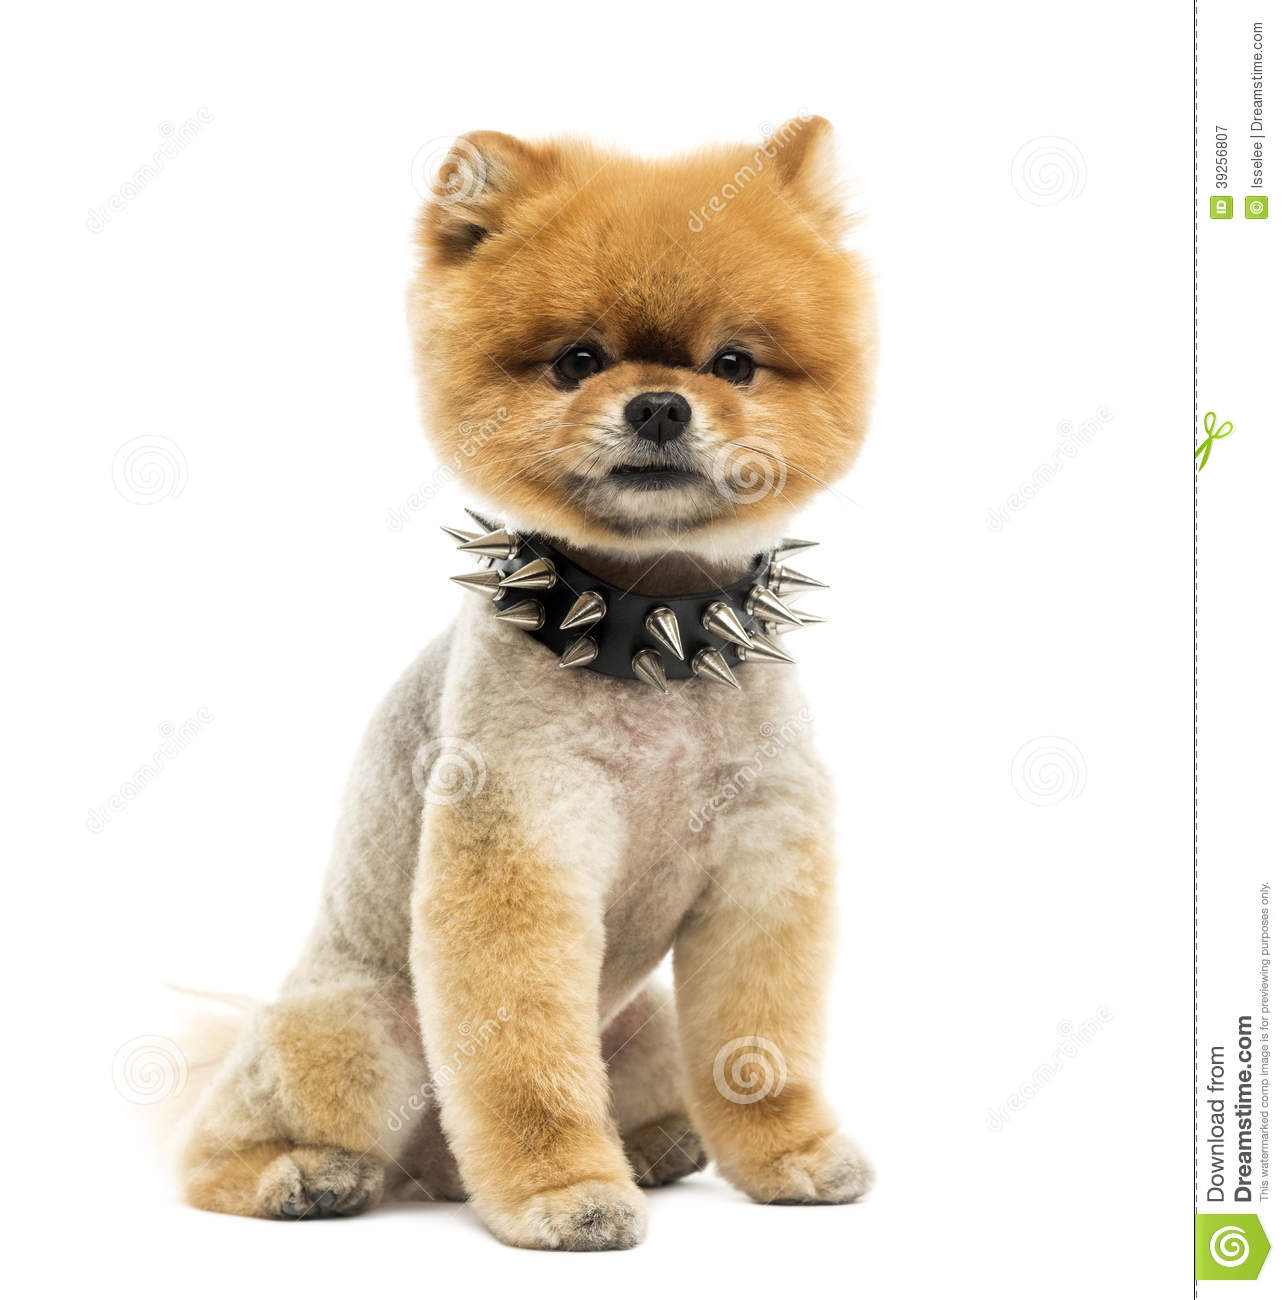 pomeranian collar groomed pomeranian dog sitting wearing a spiked collar 1455